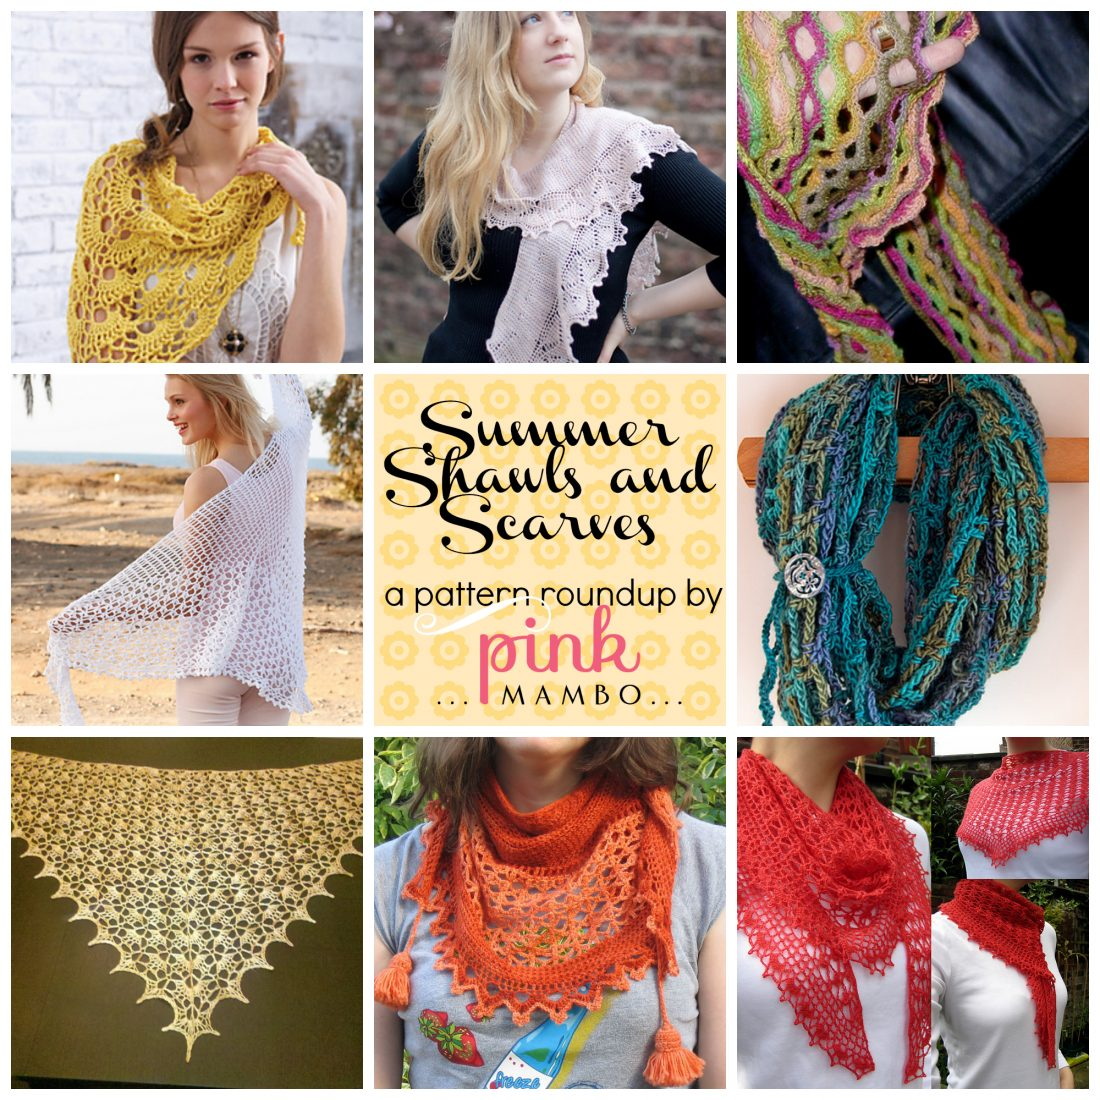 Summer Shawls and Scarves roundup